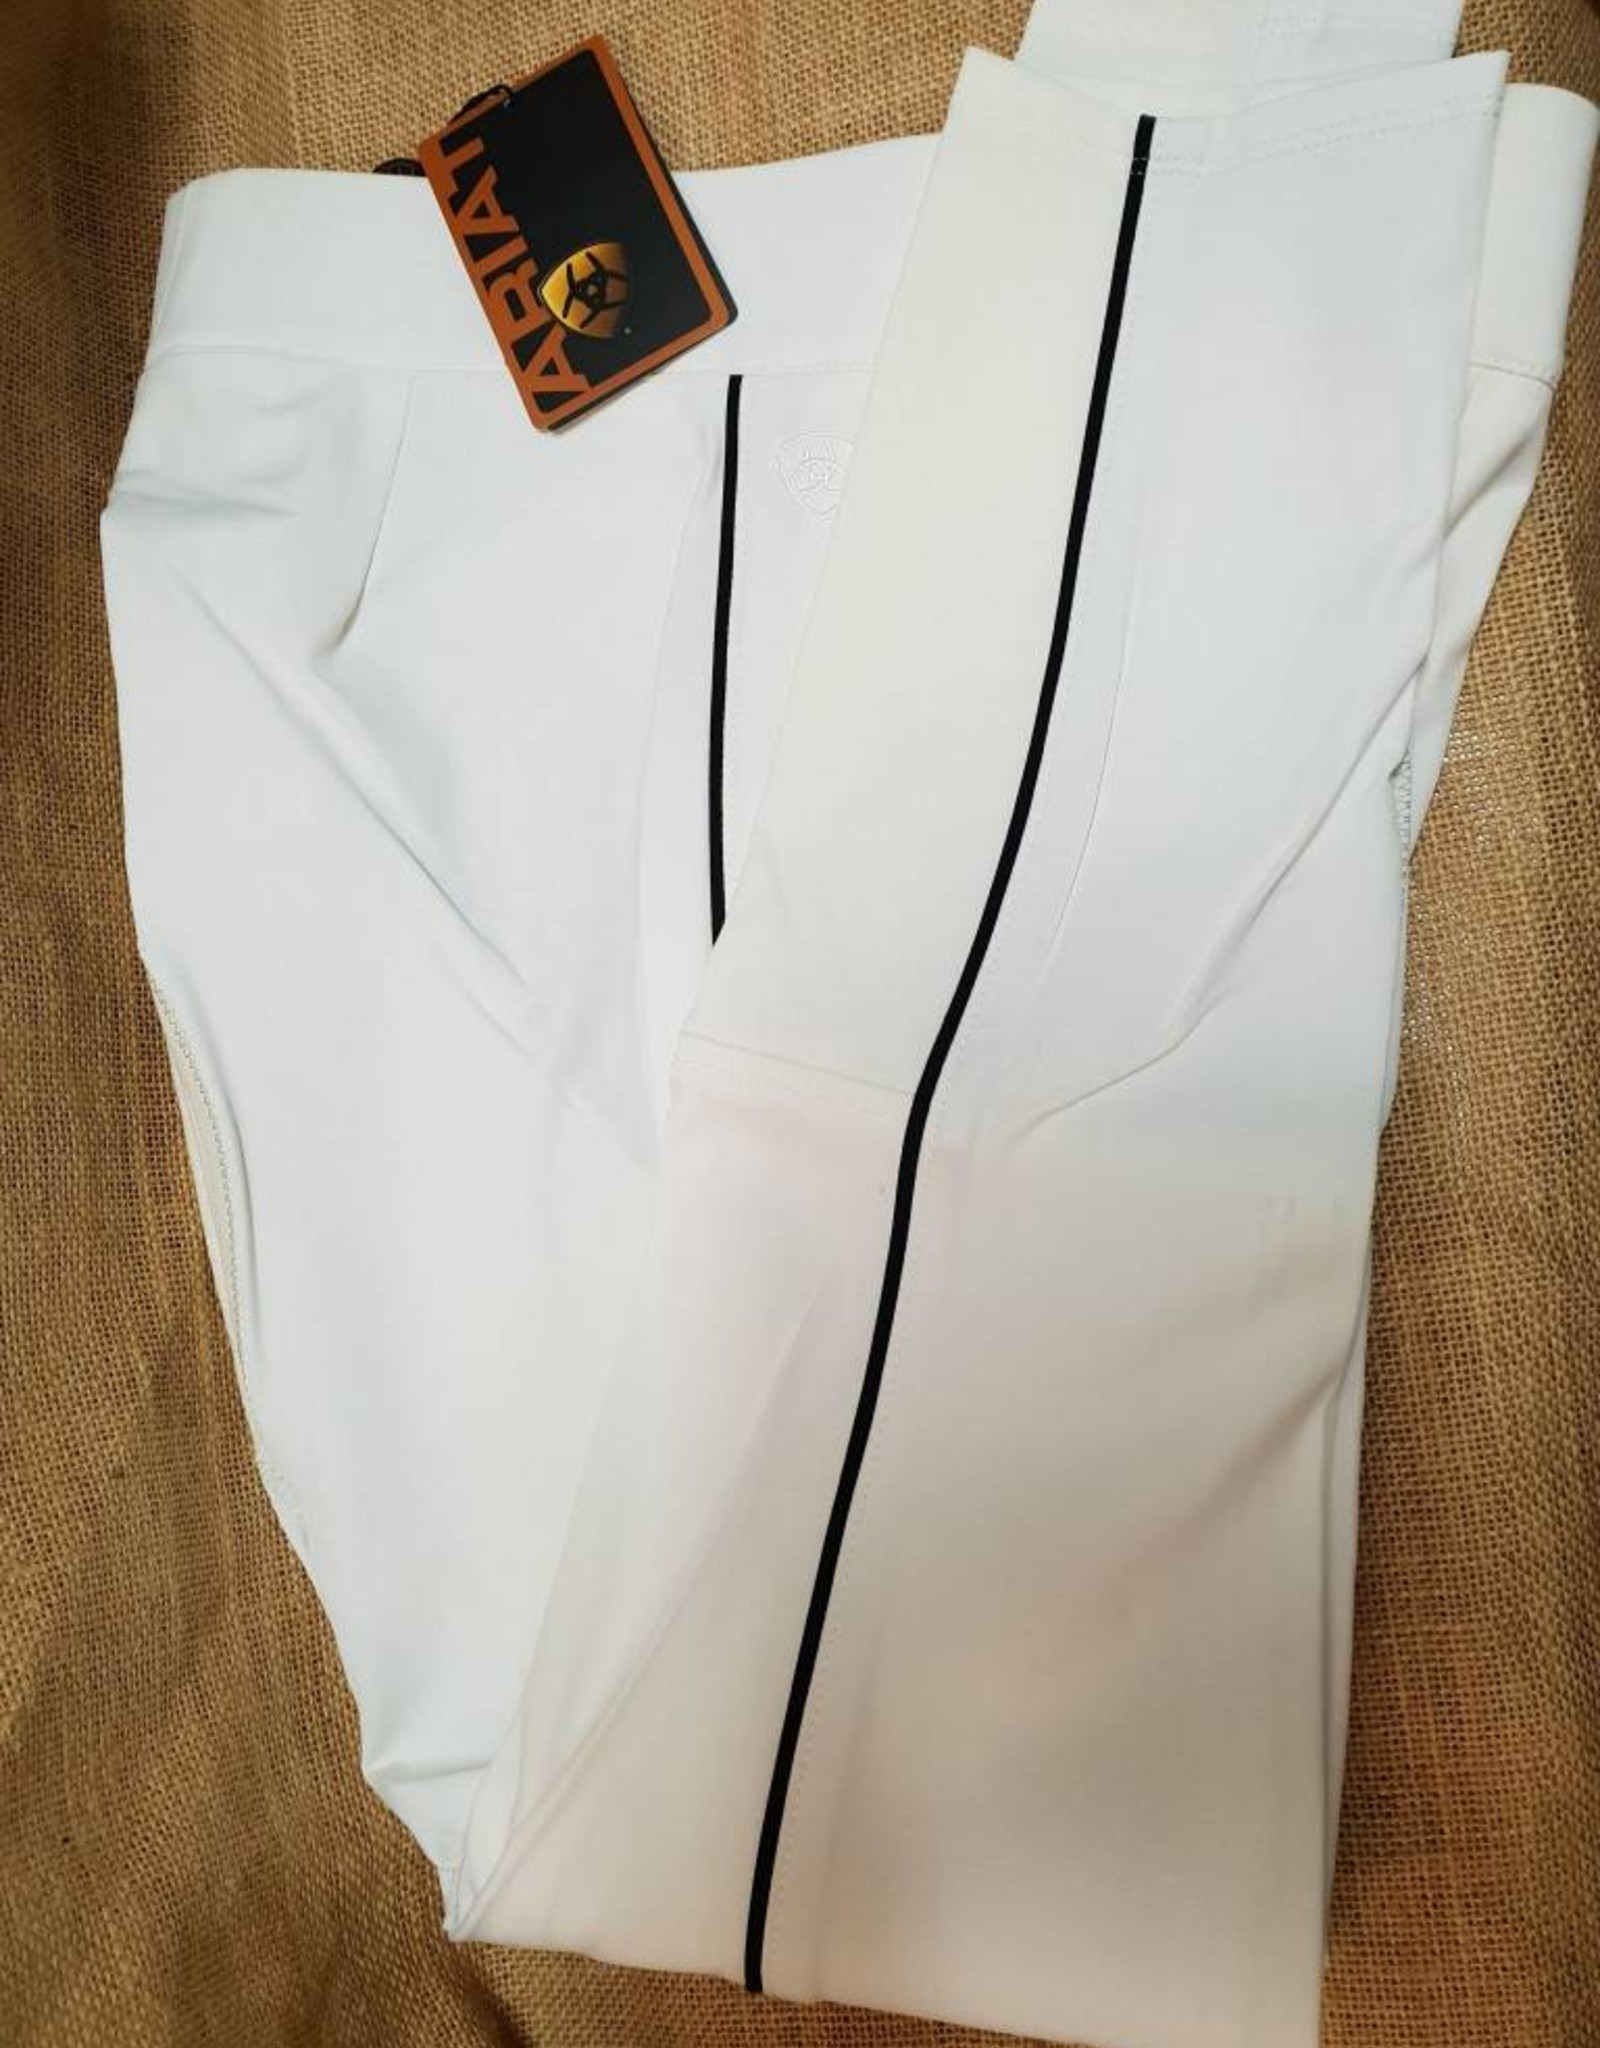 Ariat Ariat All Circuit Full Seat Breeches - White with Navy Piping -Size 32R